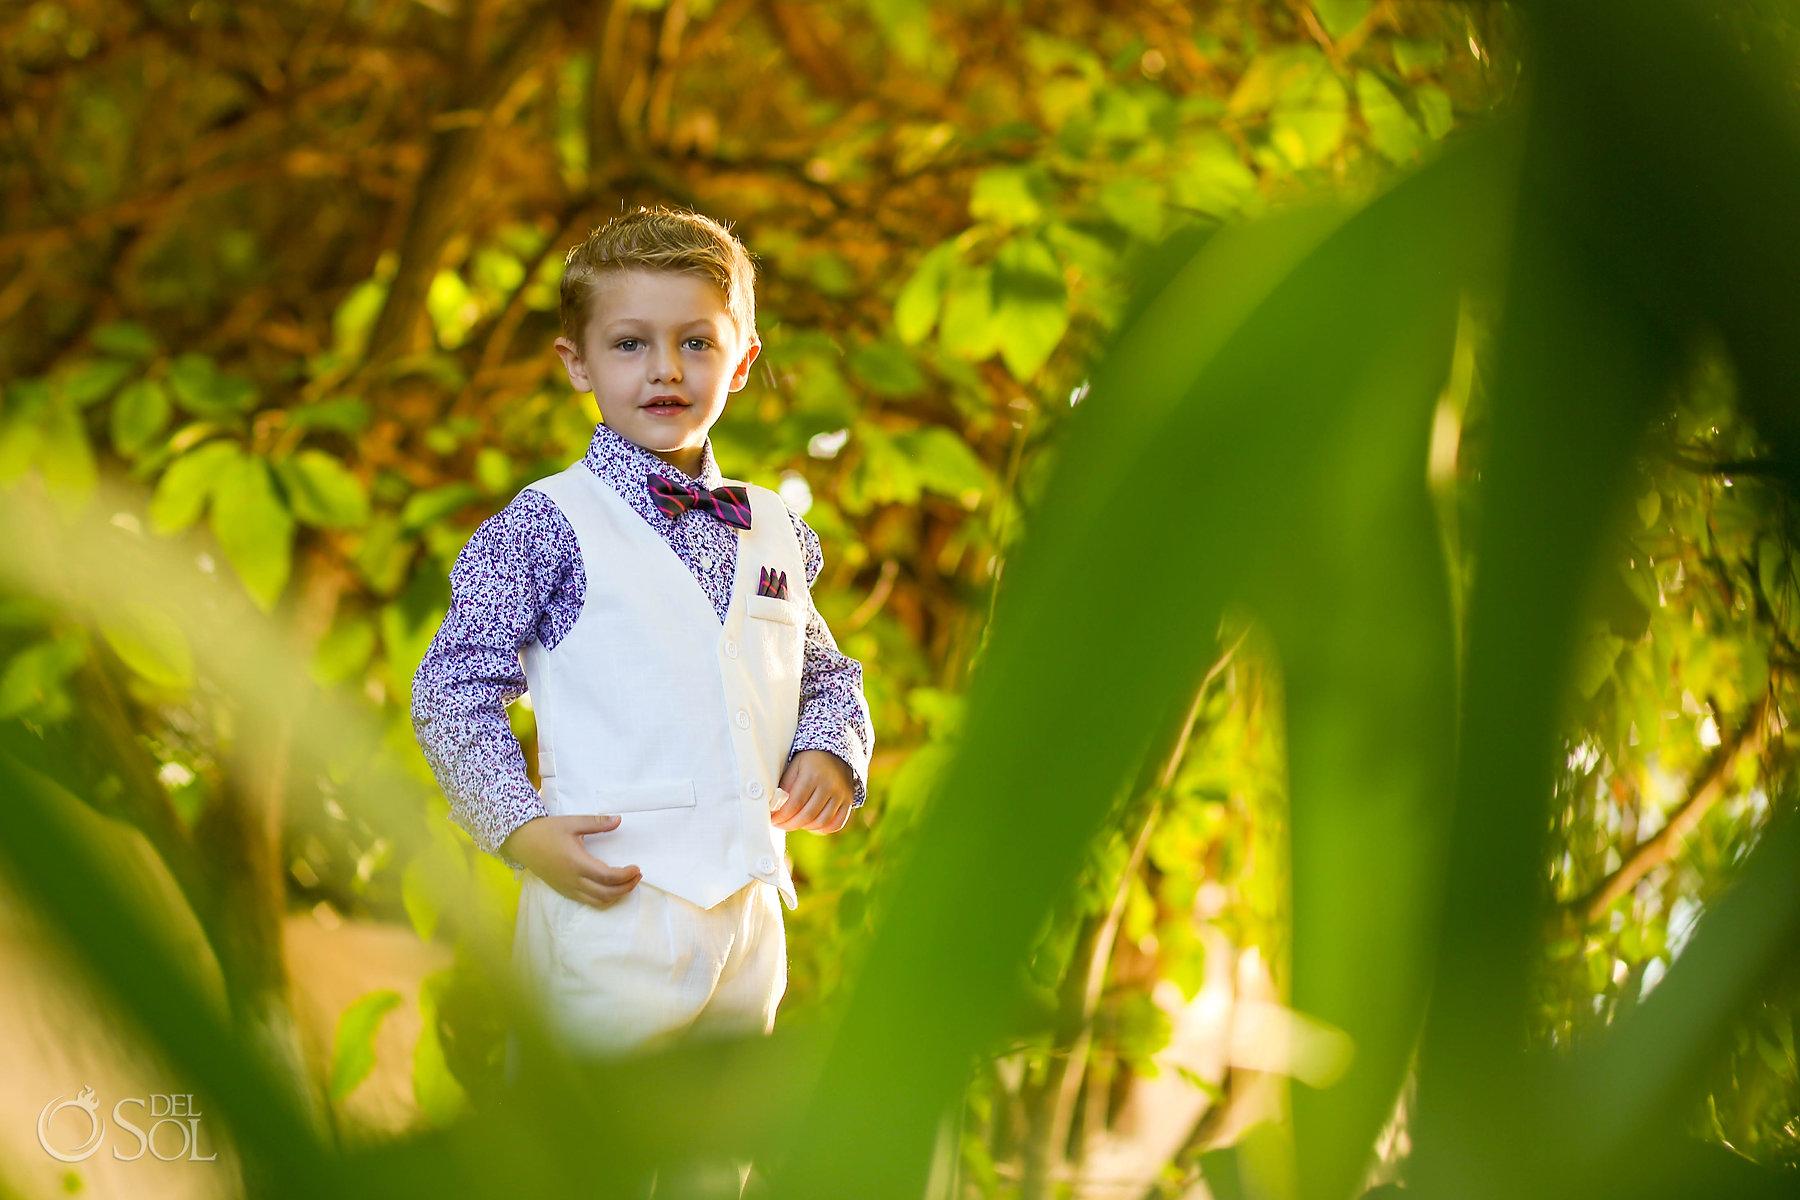 Kids portraits outfits for weddings